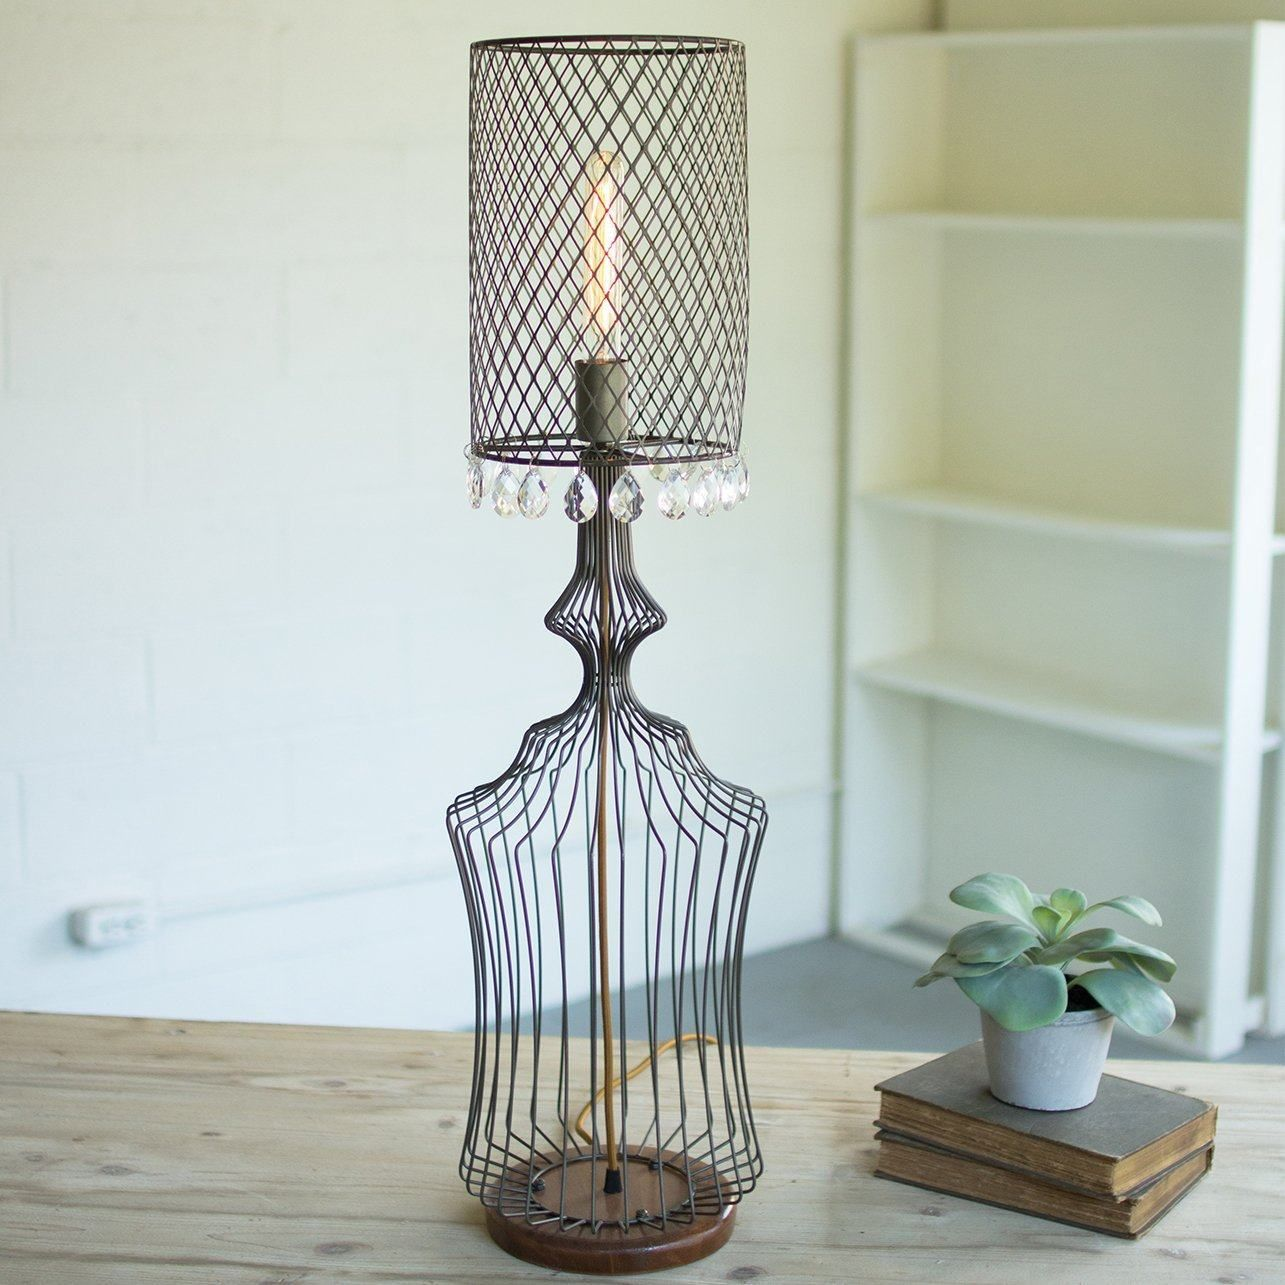 Wire Table Lamp w/metal Mesh Shade & Glass Gems ~ Small #frenchindustrial